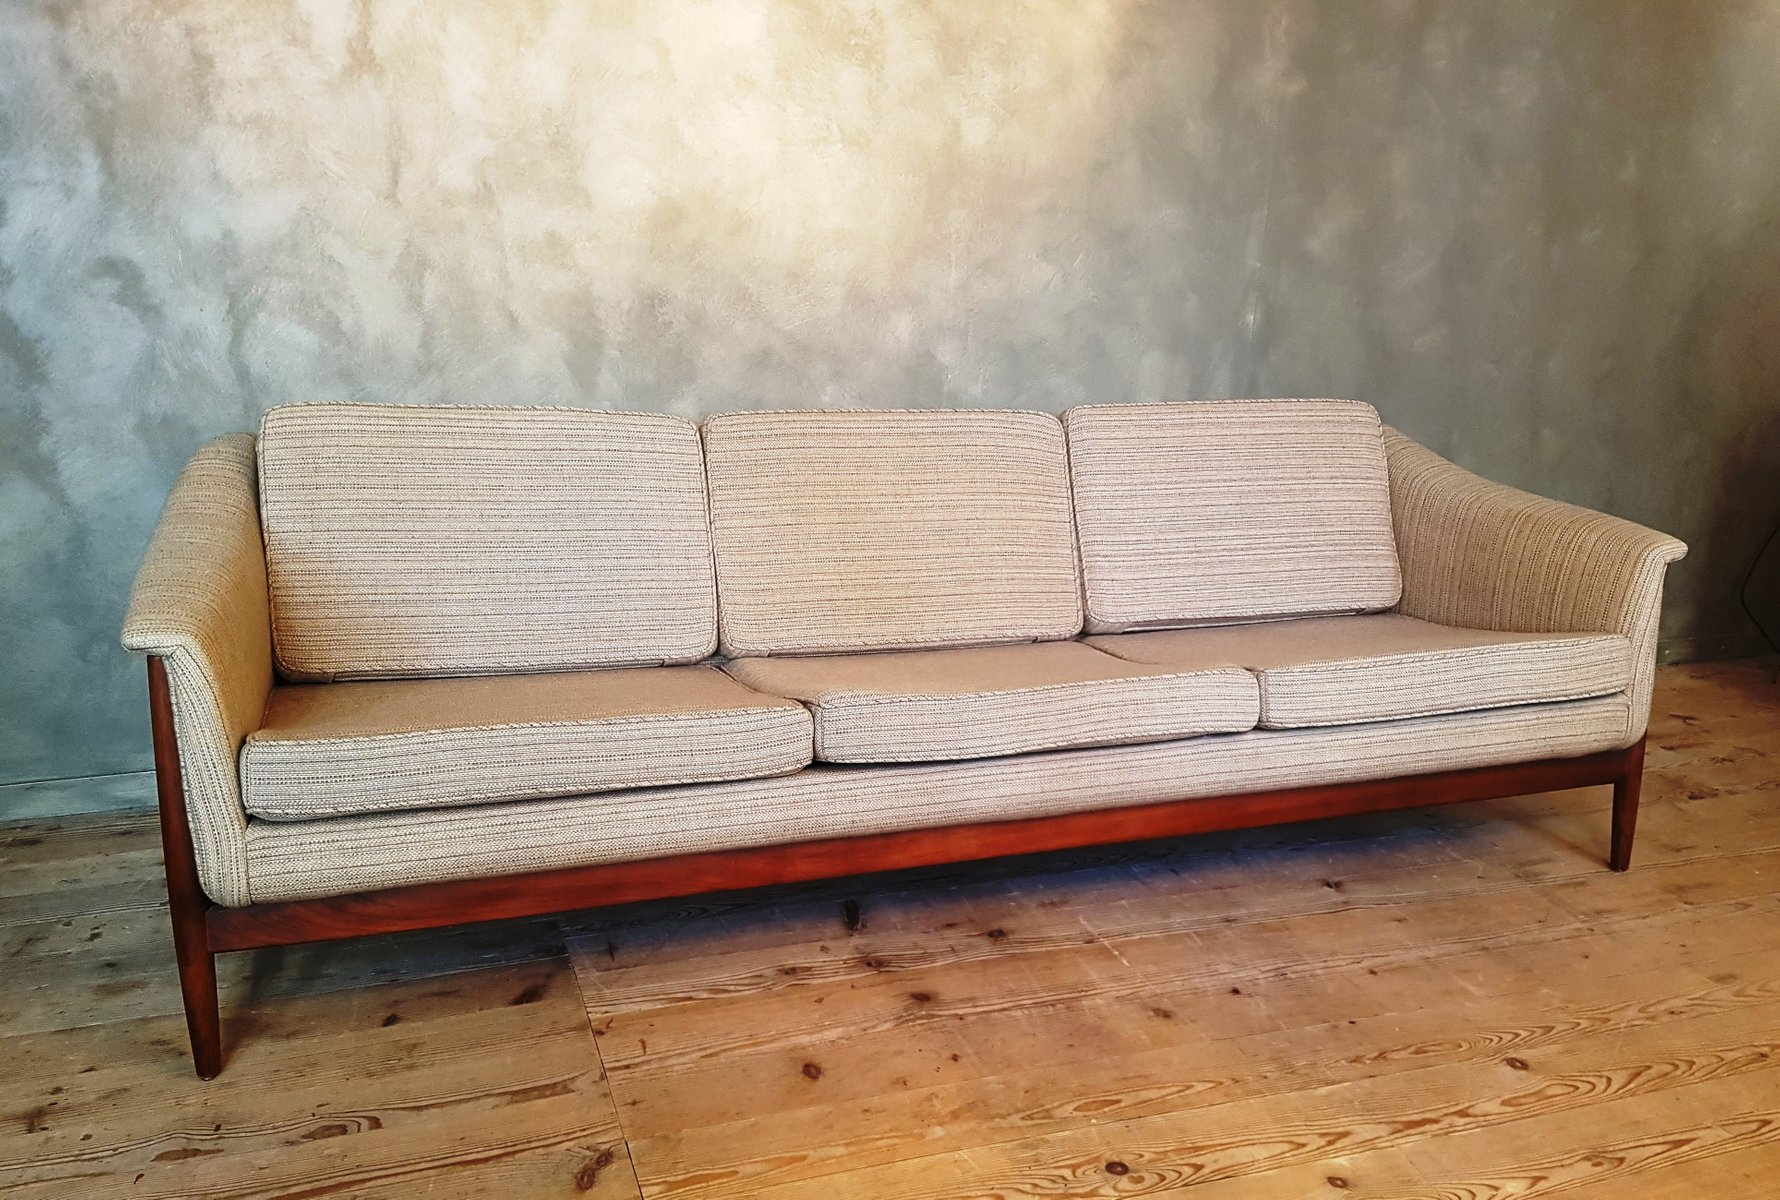 vintage 3 sitzer sofa von dux bei pamono kaufen. Black Bedroom Furniture Sets. Home Design Ideas